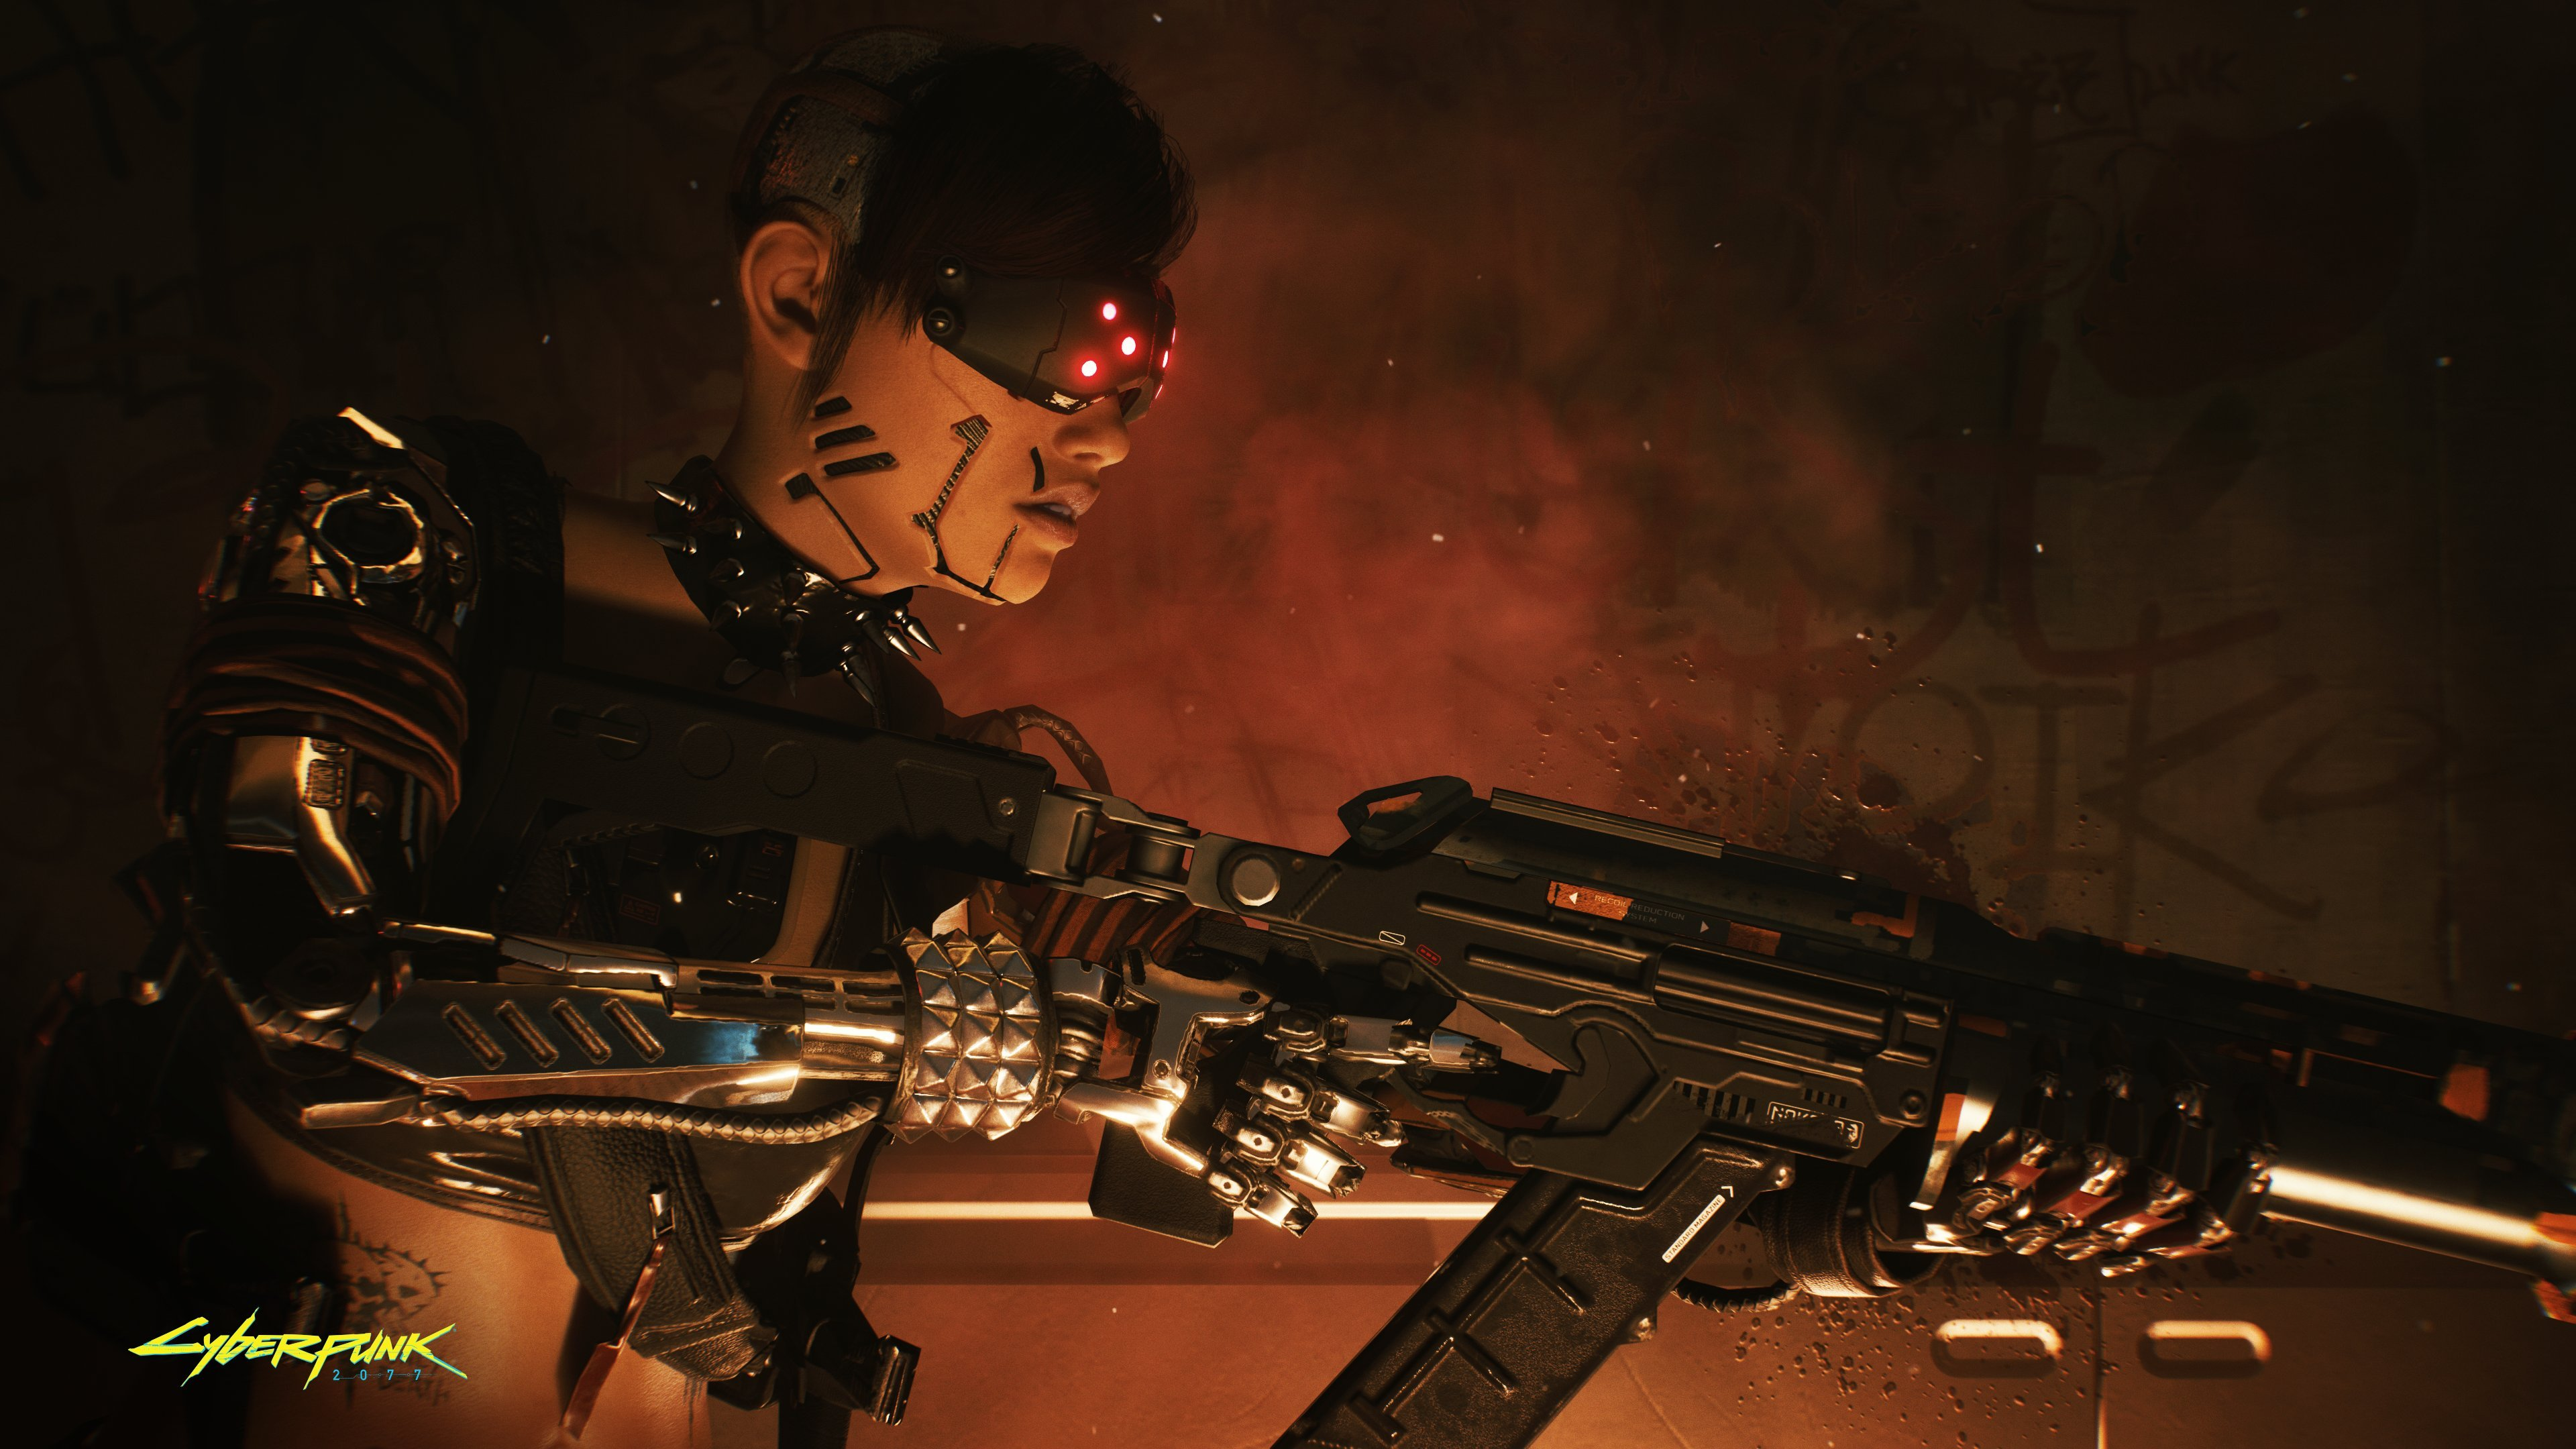 Will Cyberpunk 2077 let you use laser beams on your junk, the only way to completely obliterate the follicle? screenshot